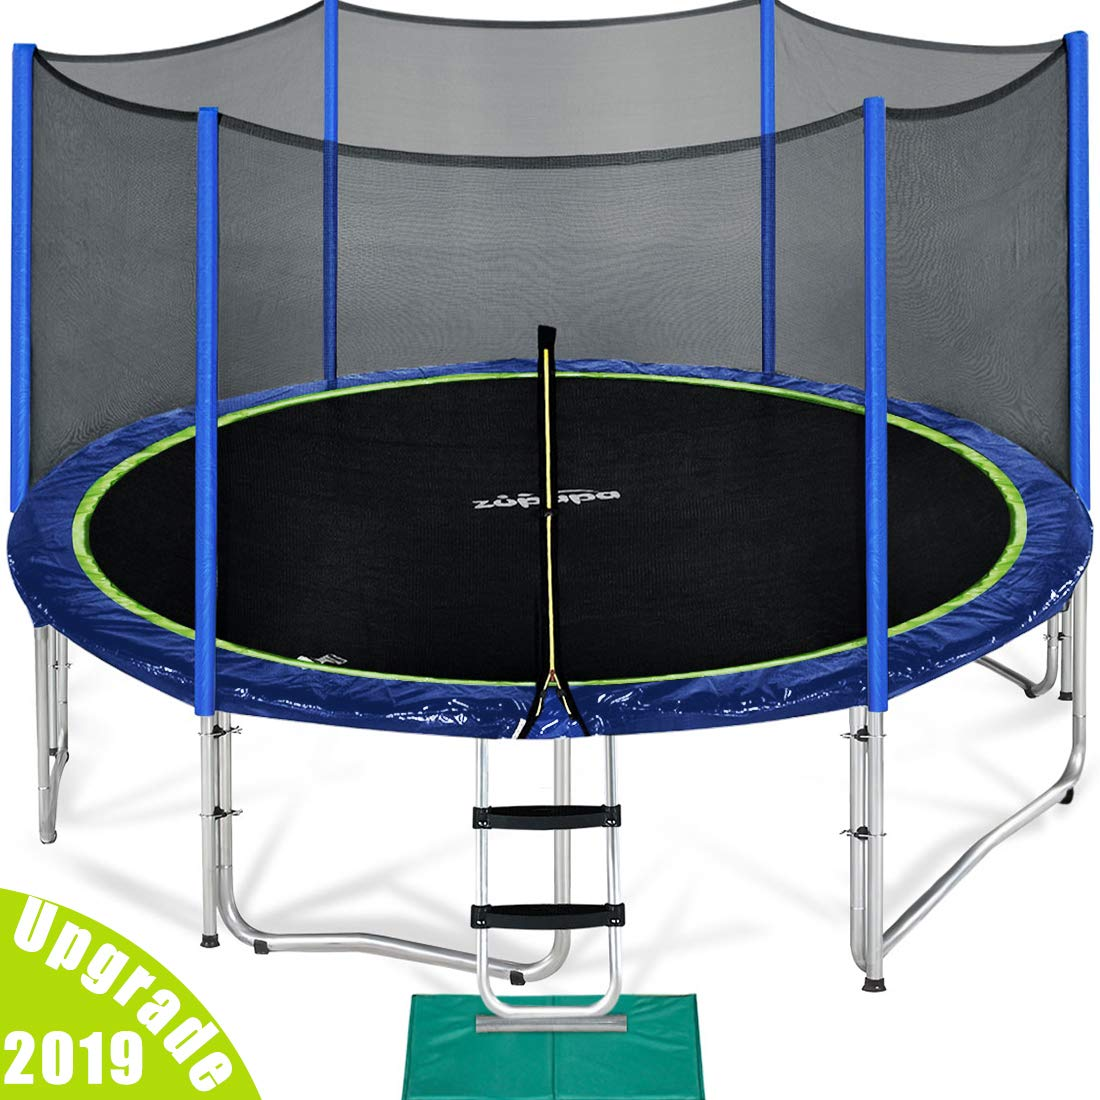 Zupapa 15/14/12 ft TUV Approved Trampoline with Enclosure Net